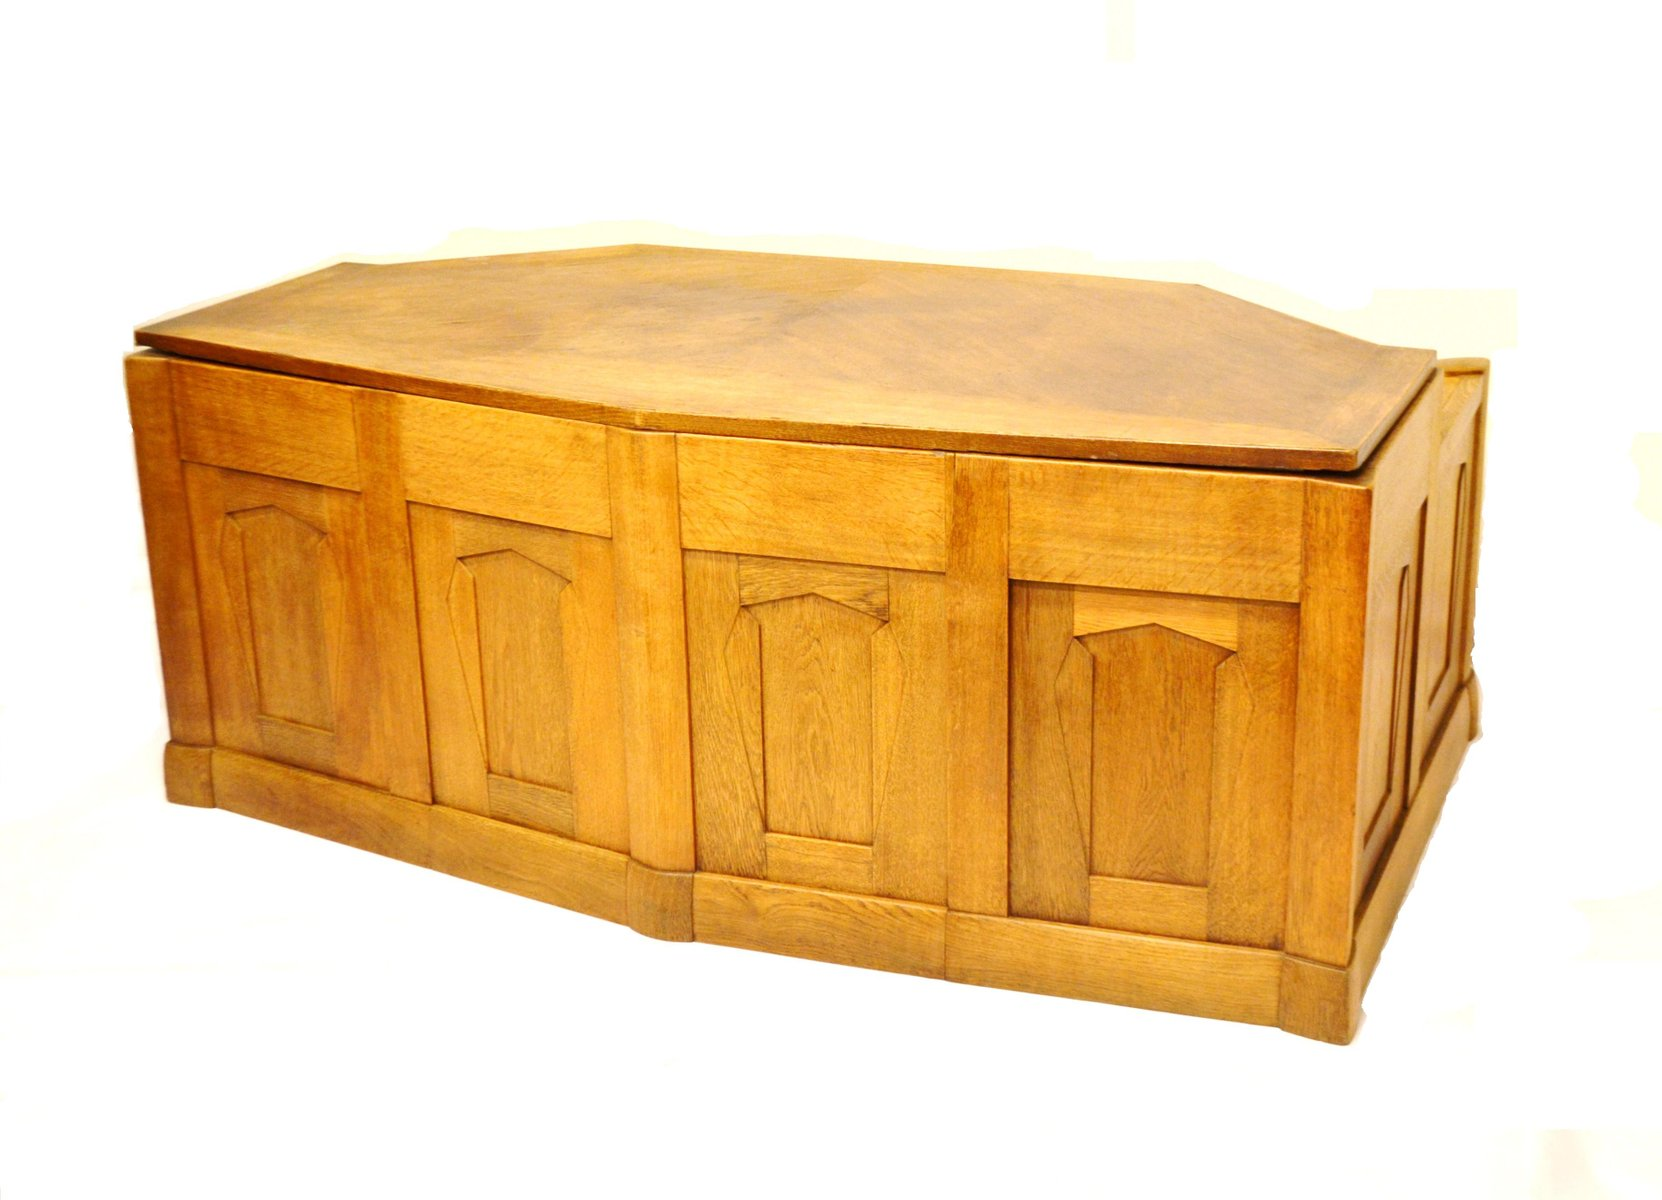 large dutch art deco writing desk s for sale at pamono - large dutch art deco writing desk s